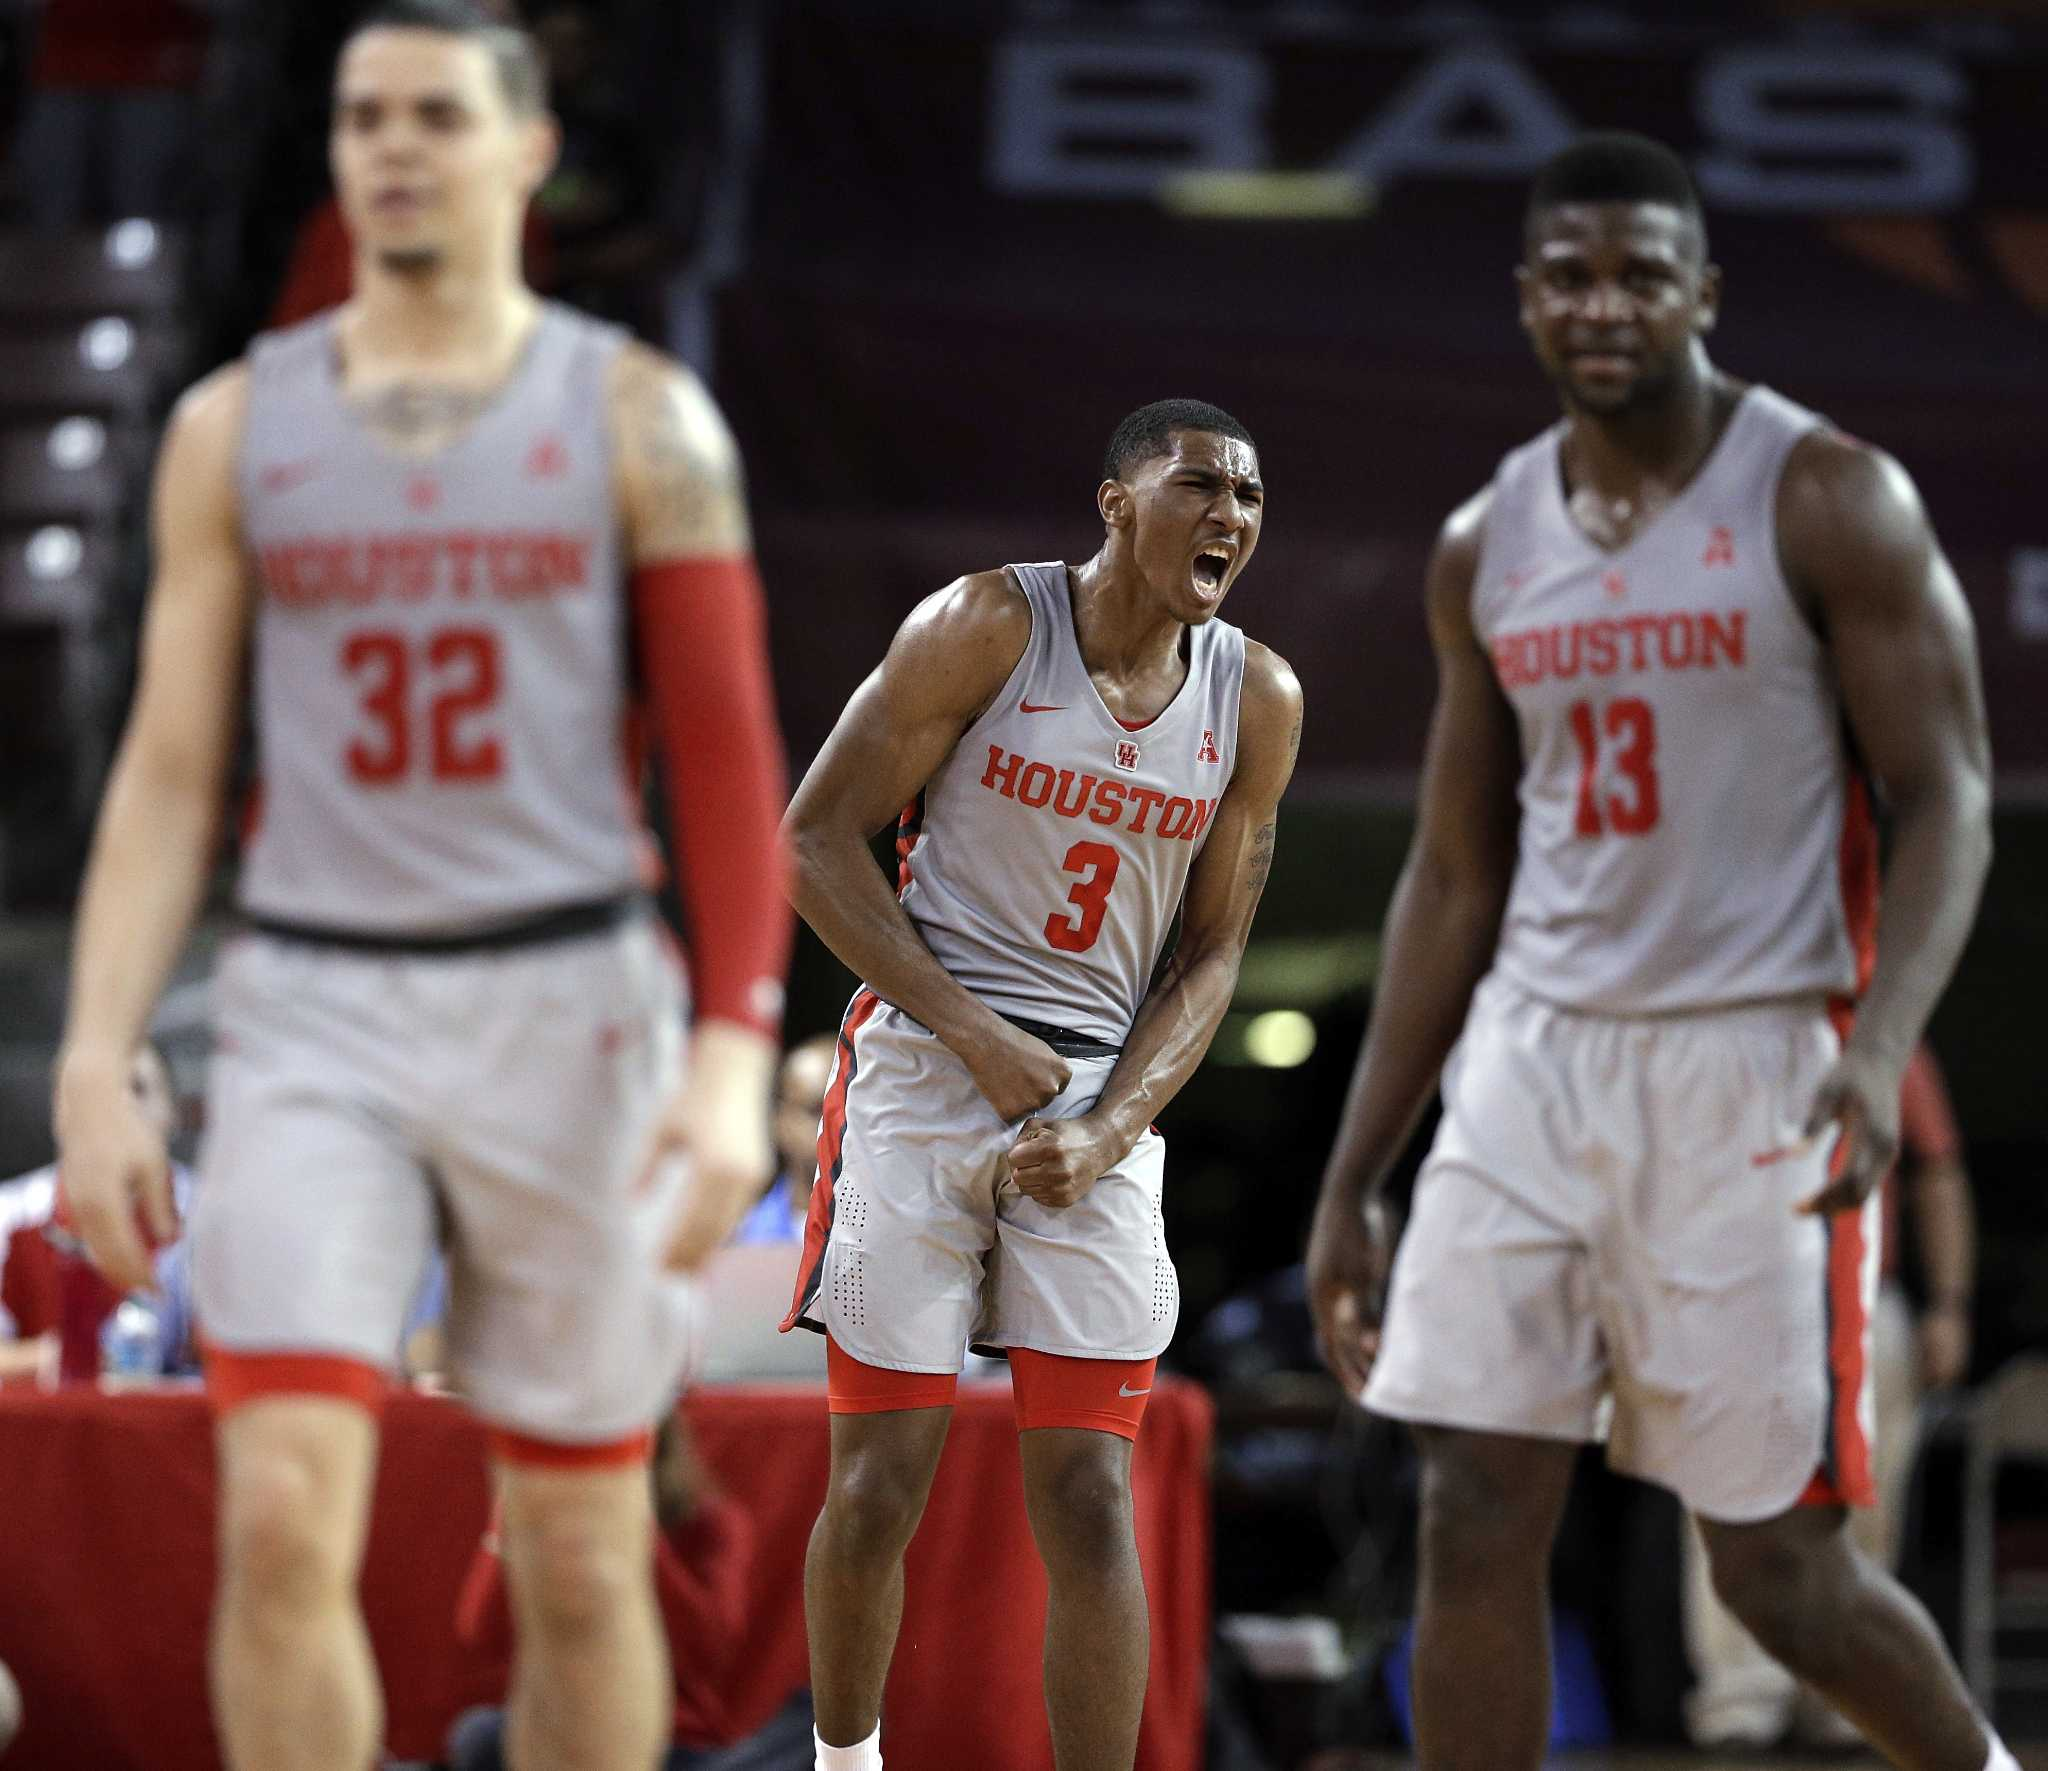 Up next for No. 21 Houston men's basketball: No. 8 Cincinnati